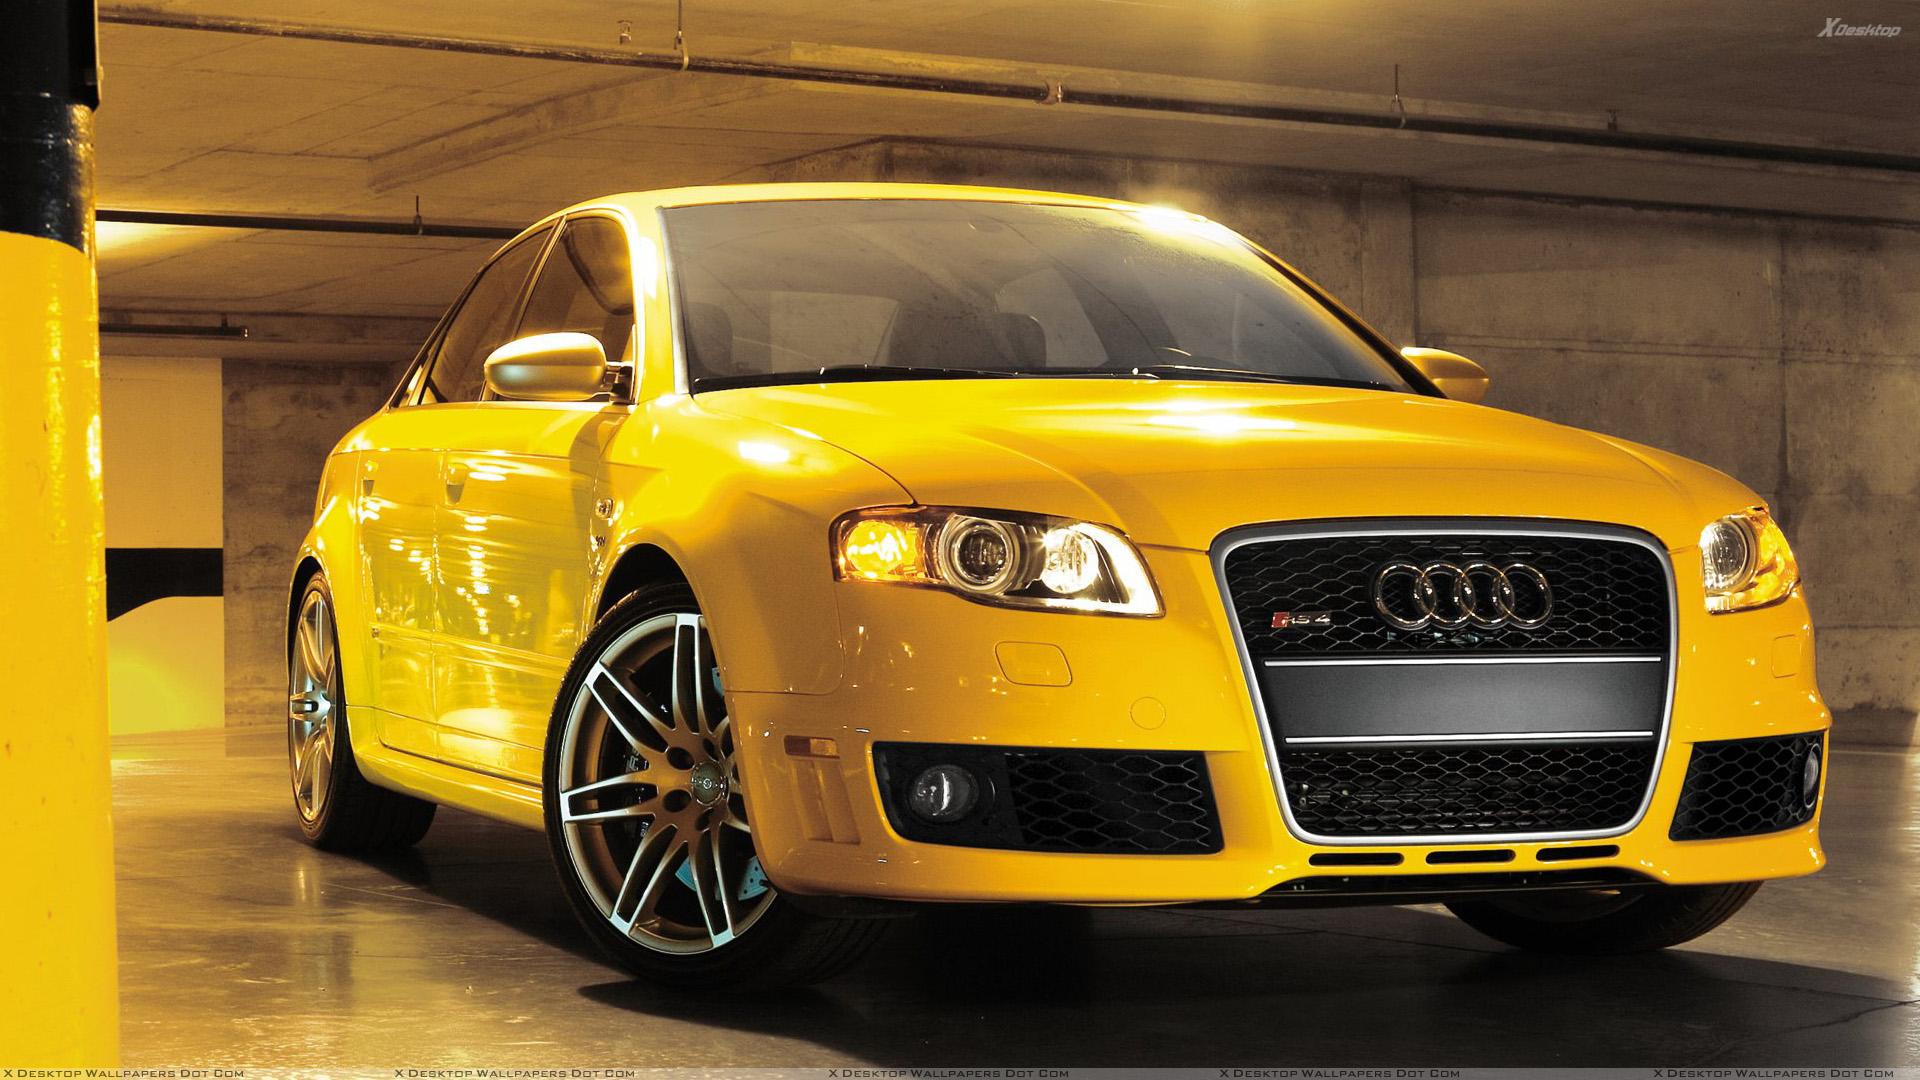 Audi Rs4 Cabriolet Front Pose In Yellow In Garage Wallpaper